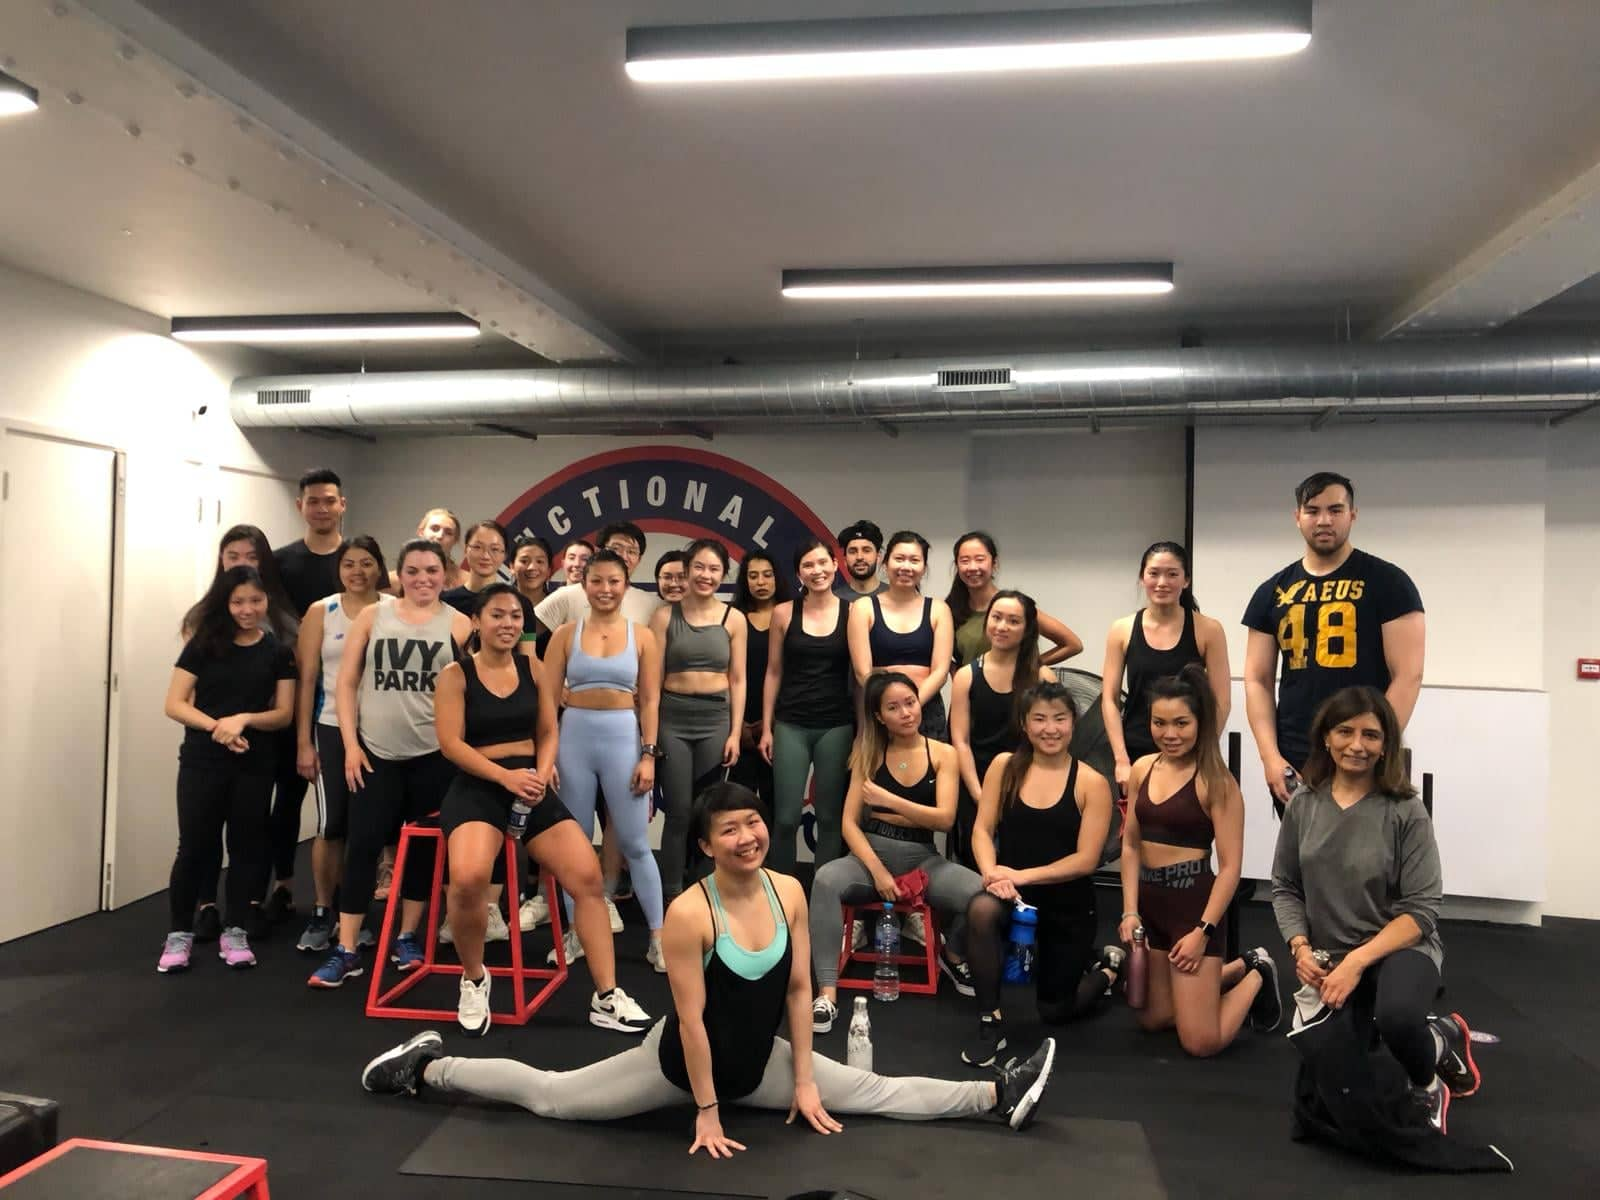 SUCCESSFUL 2nd EVENT! - Want to know more about what our events are like? Read about our second sold out event at F45 Liverpool Street, followed by lunch at Hotbox!